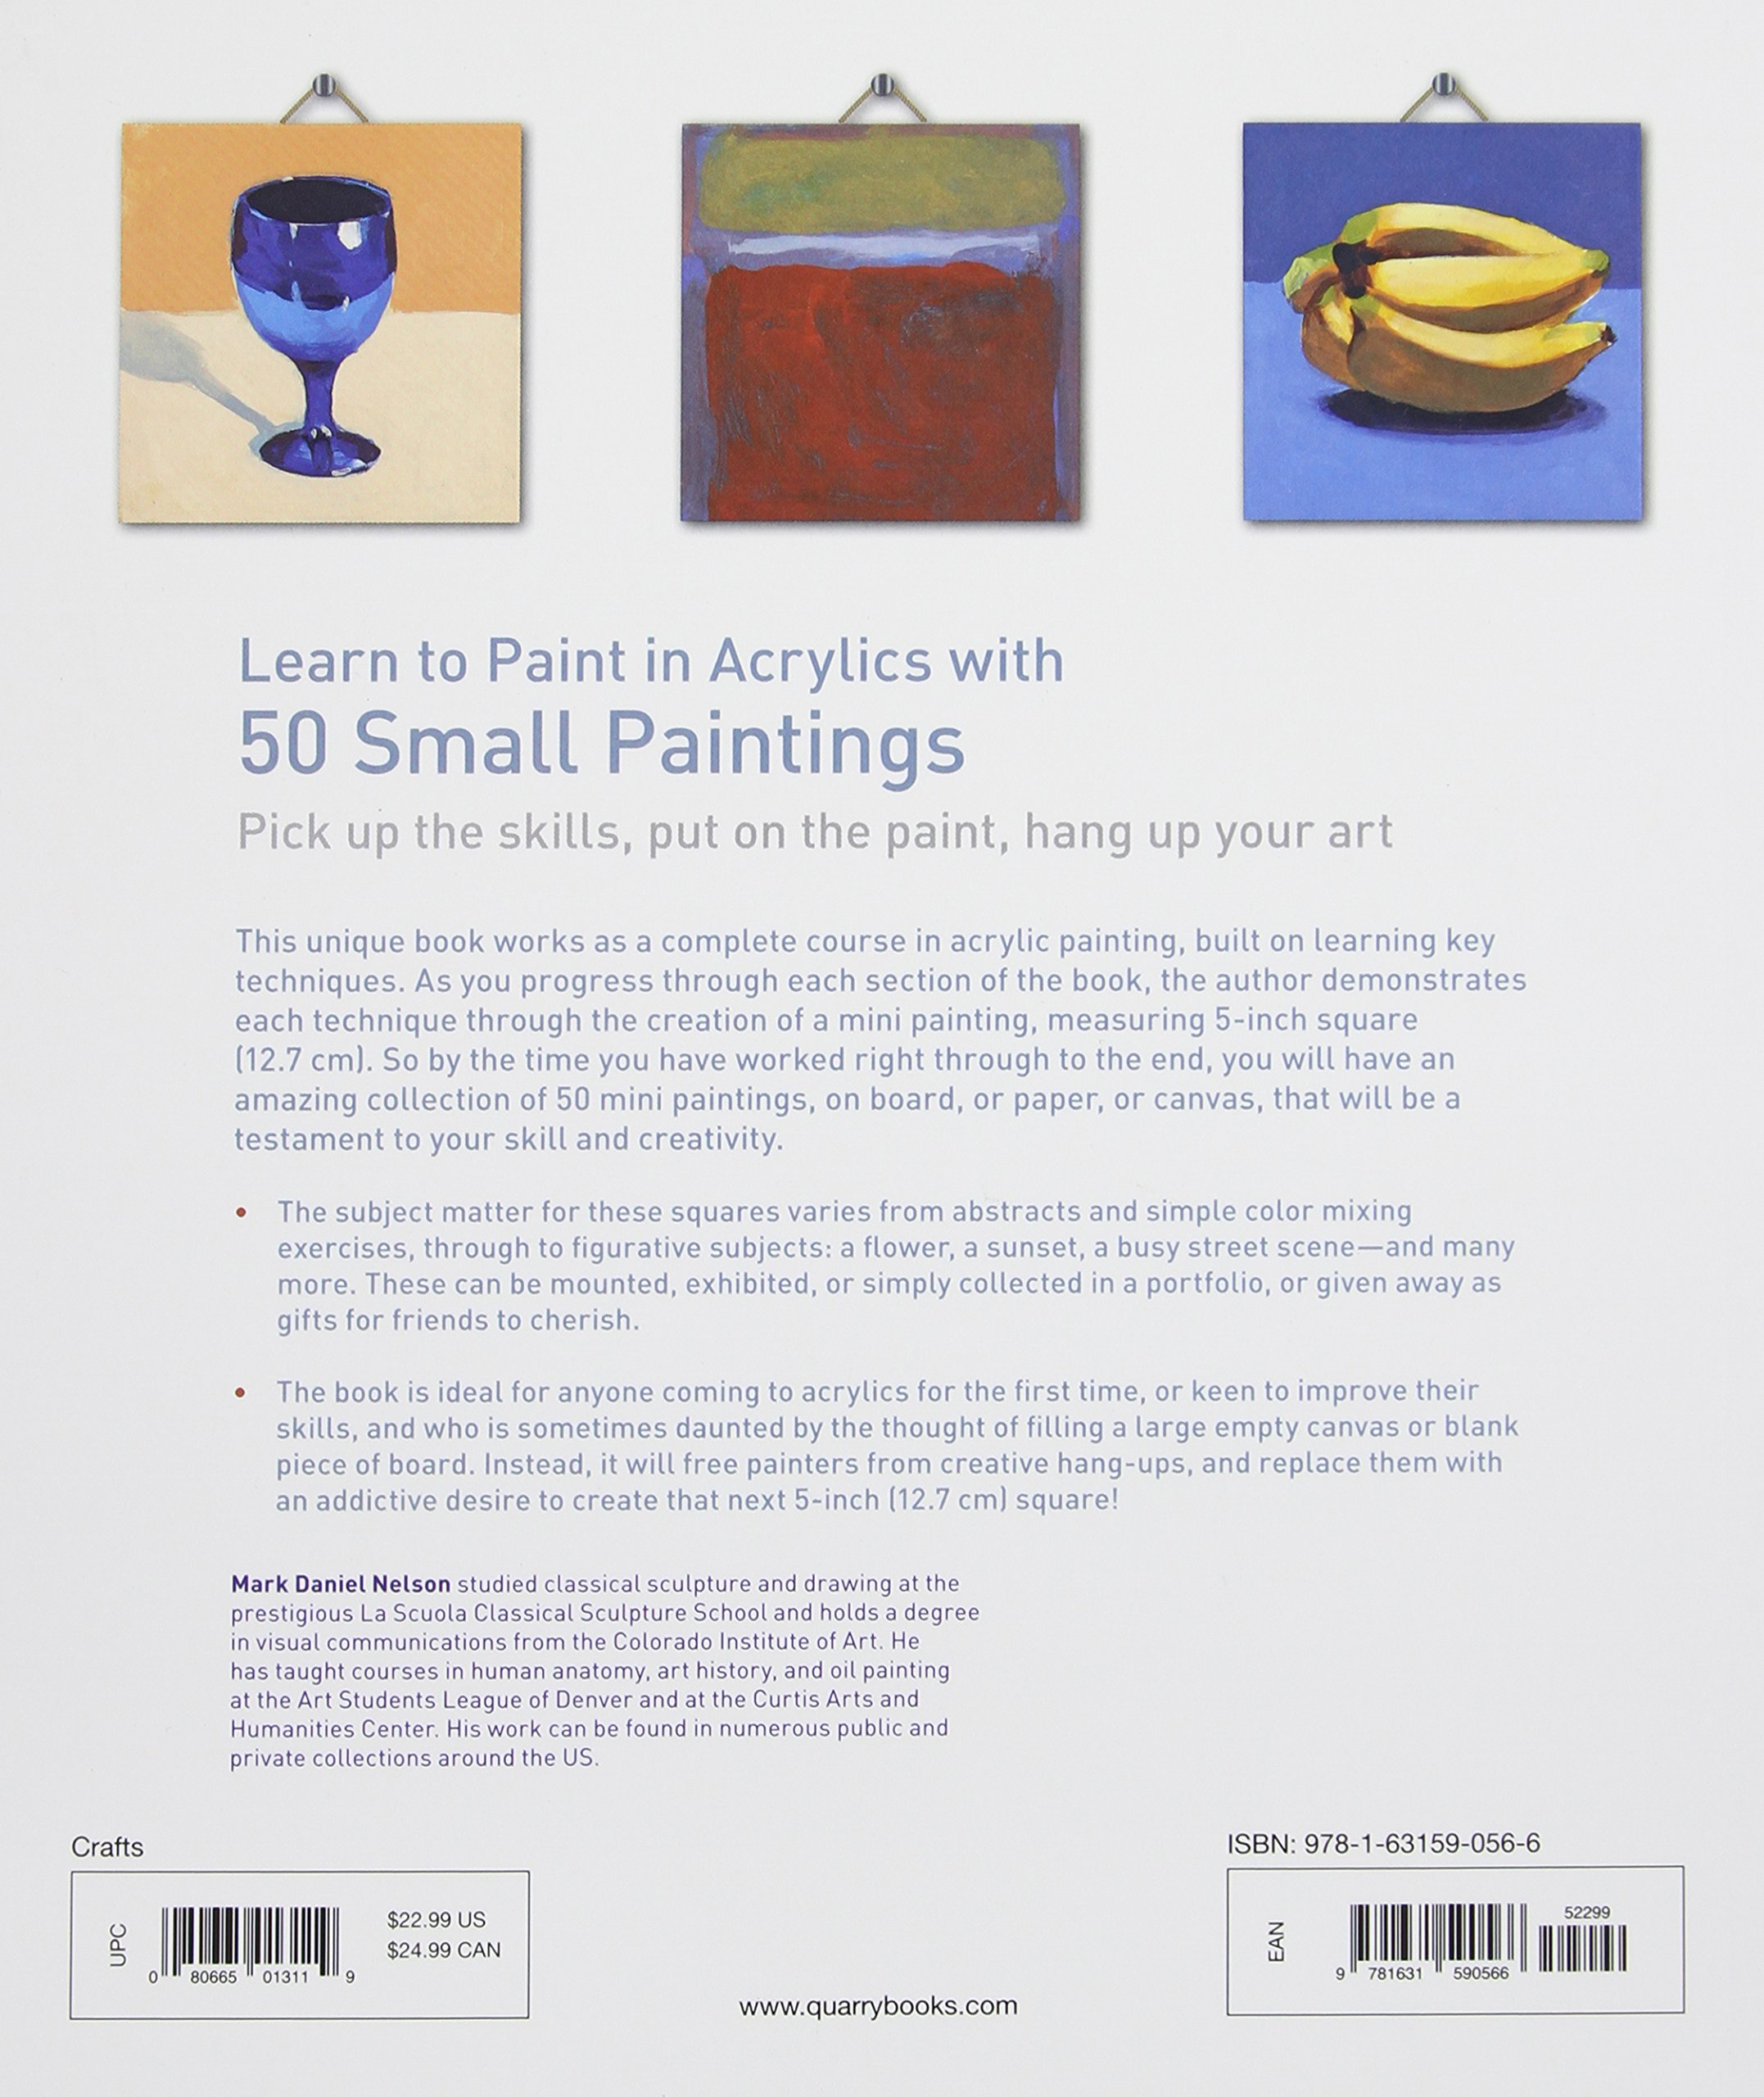 Learn to Paint in Acrylics with 50 Small Paintings: Pick up the skills *  Put on the paint * Hang up your art: Mark Daniel Nelson: 9781631590566:  Amazon.com: ...